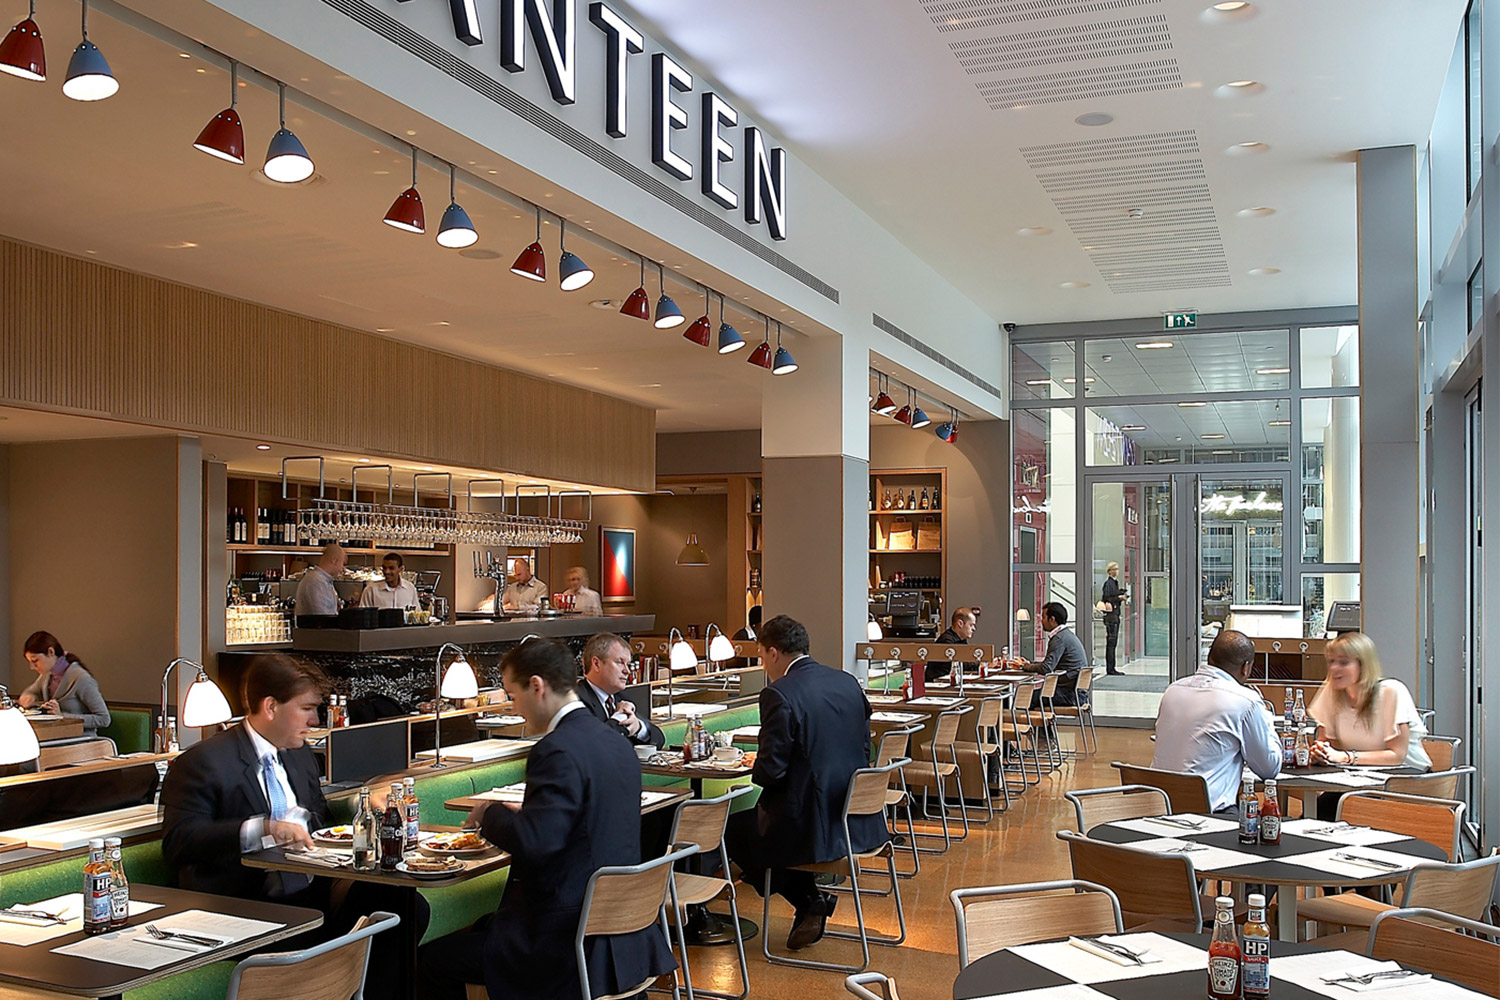 Canteen,-Canary-Wharf4